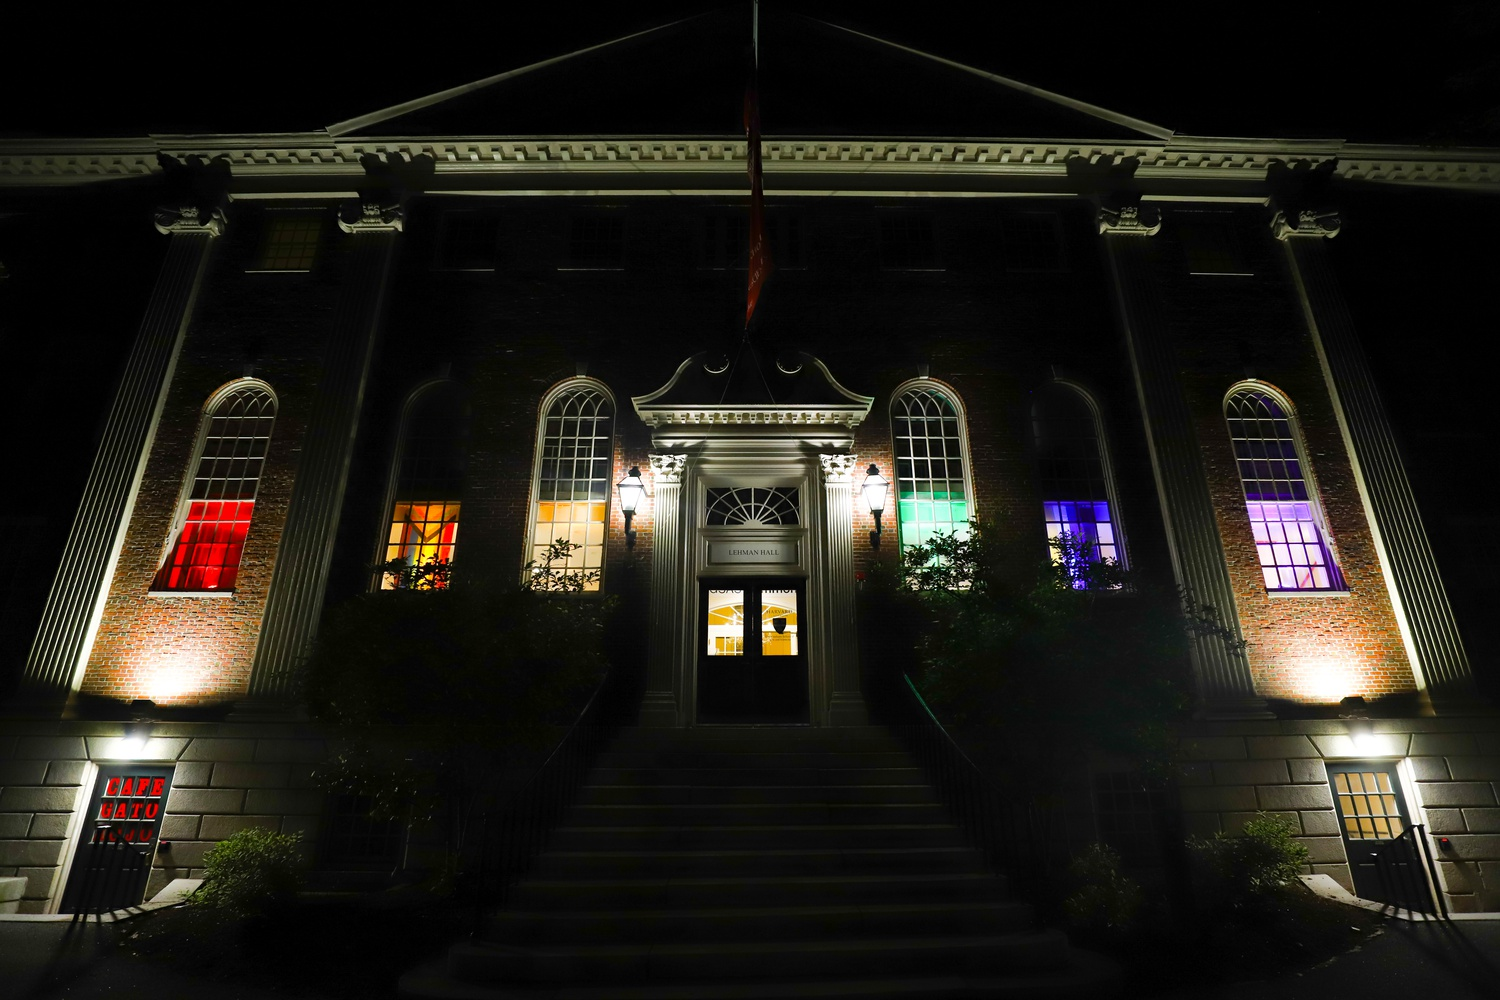 The University's expanded Pride Month programming this year included the illumination of the Graduate School of Arts and Sciences's Lehman Hall in rainbow colors.